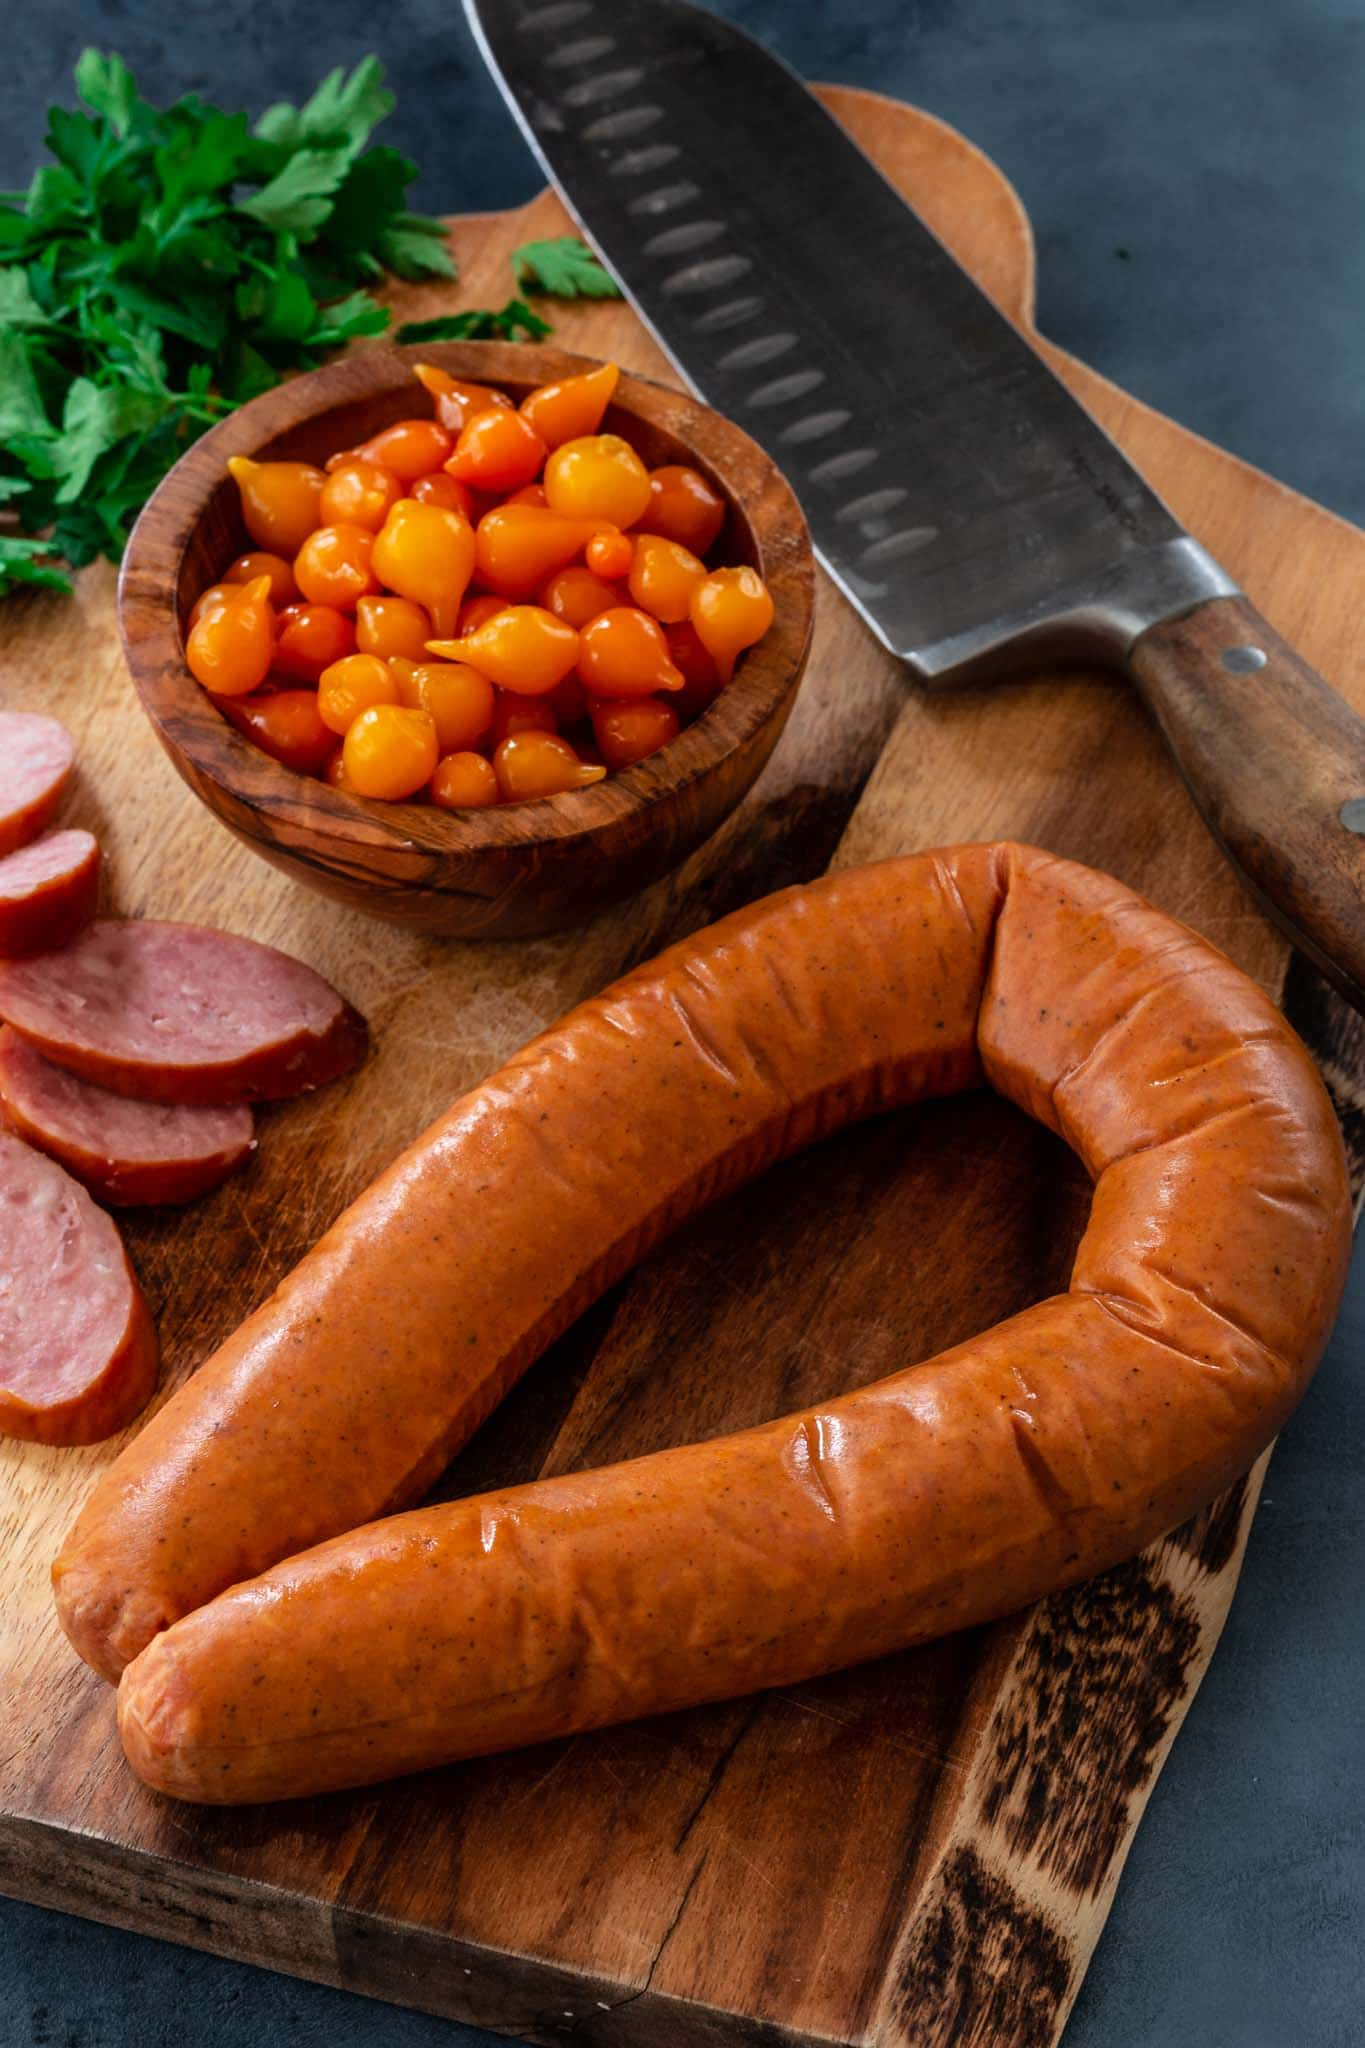 ingredients for kielbasa sausage bites